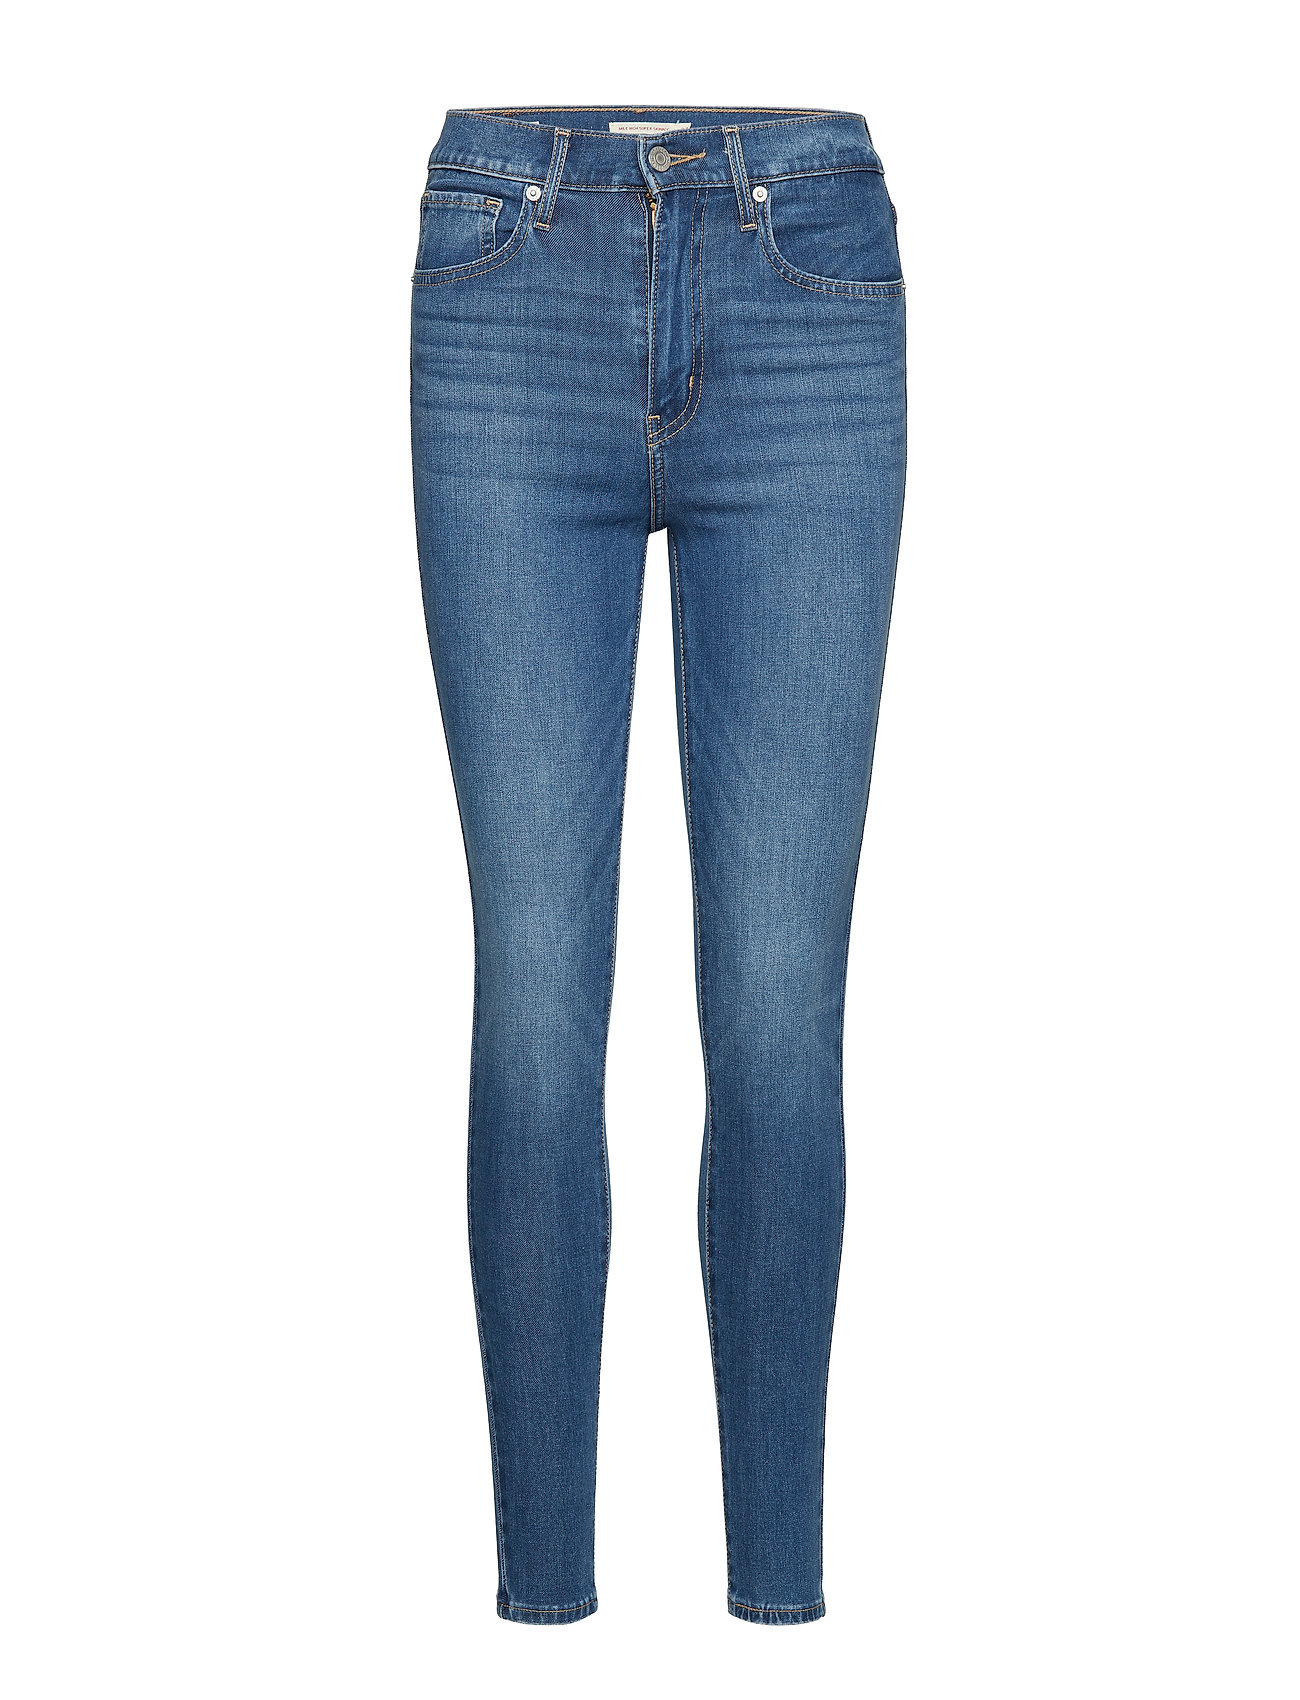 LEVI´S Women MILE HIGH SUPER SKINNY ON CALL - MED INDIGO - WORN IN